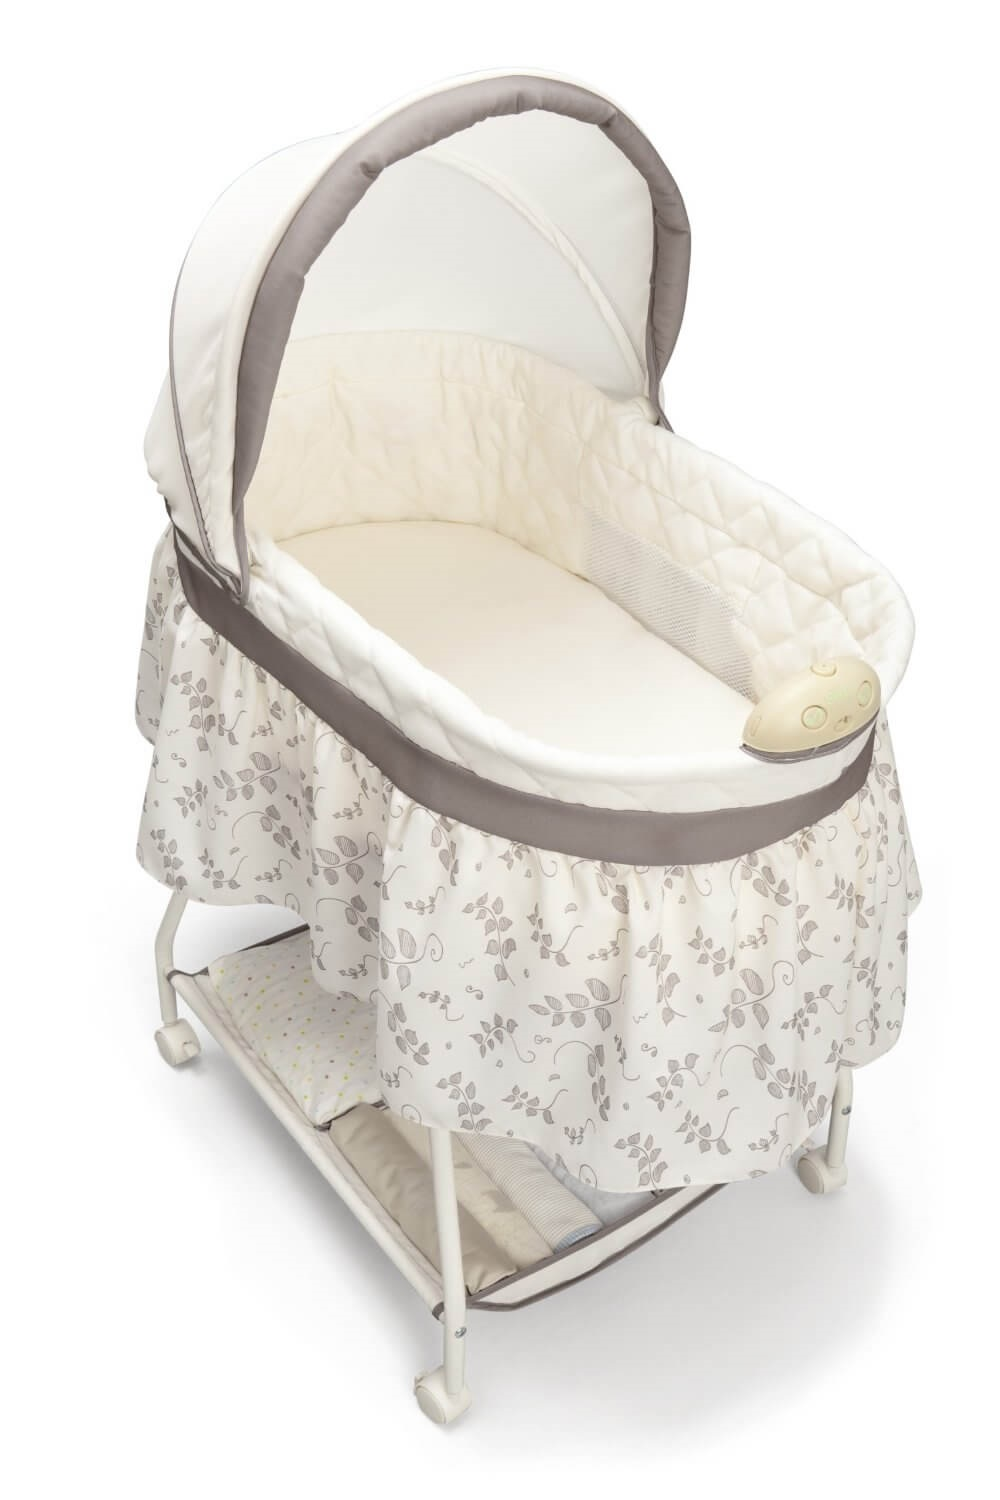 Graco Newborn Bassinet Graco Pack N Play Where Should Newborns Sleep Familyeducation